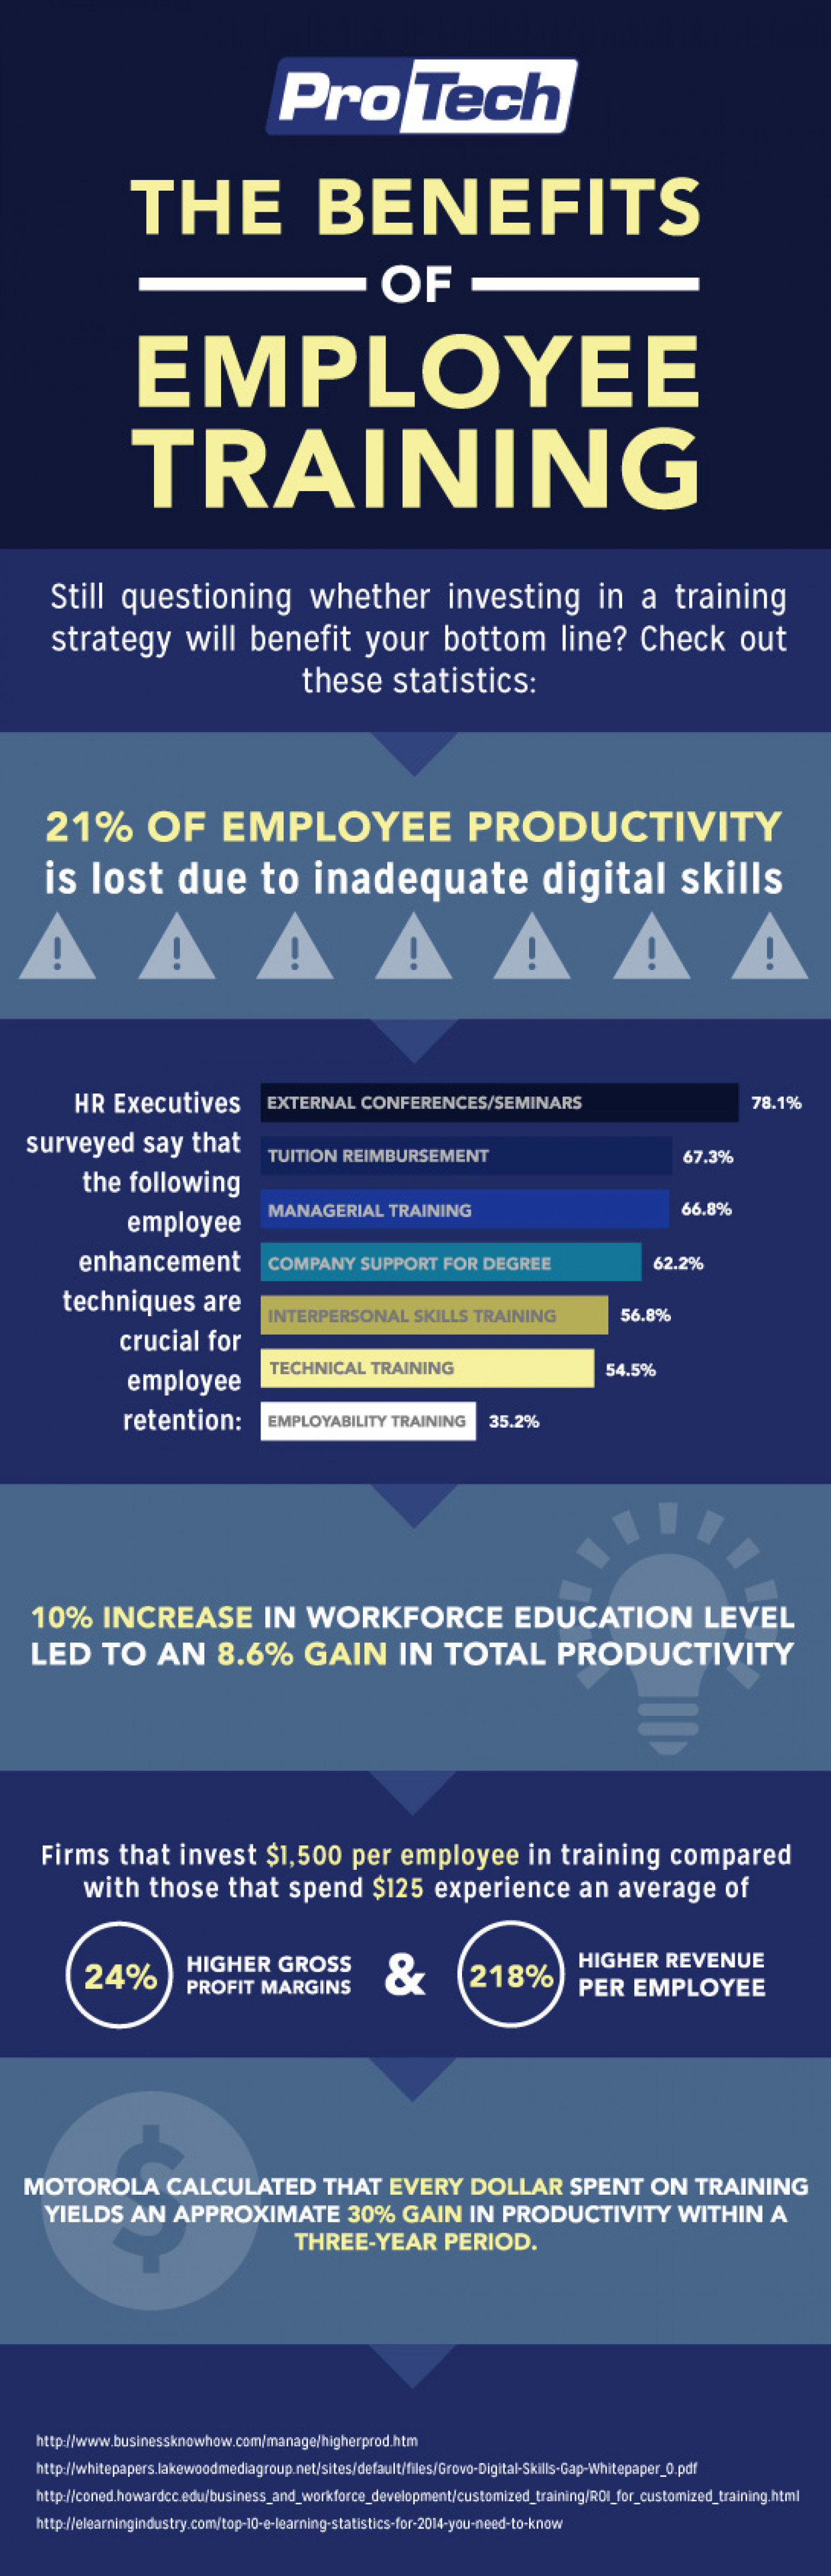 The Benefits of Employee Training Infographic